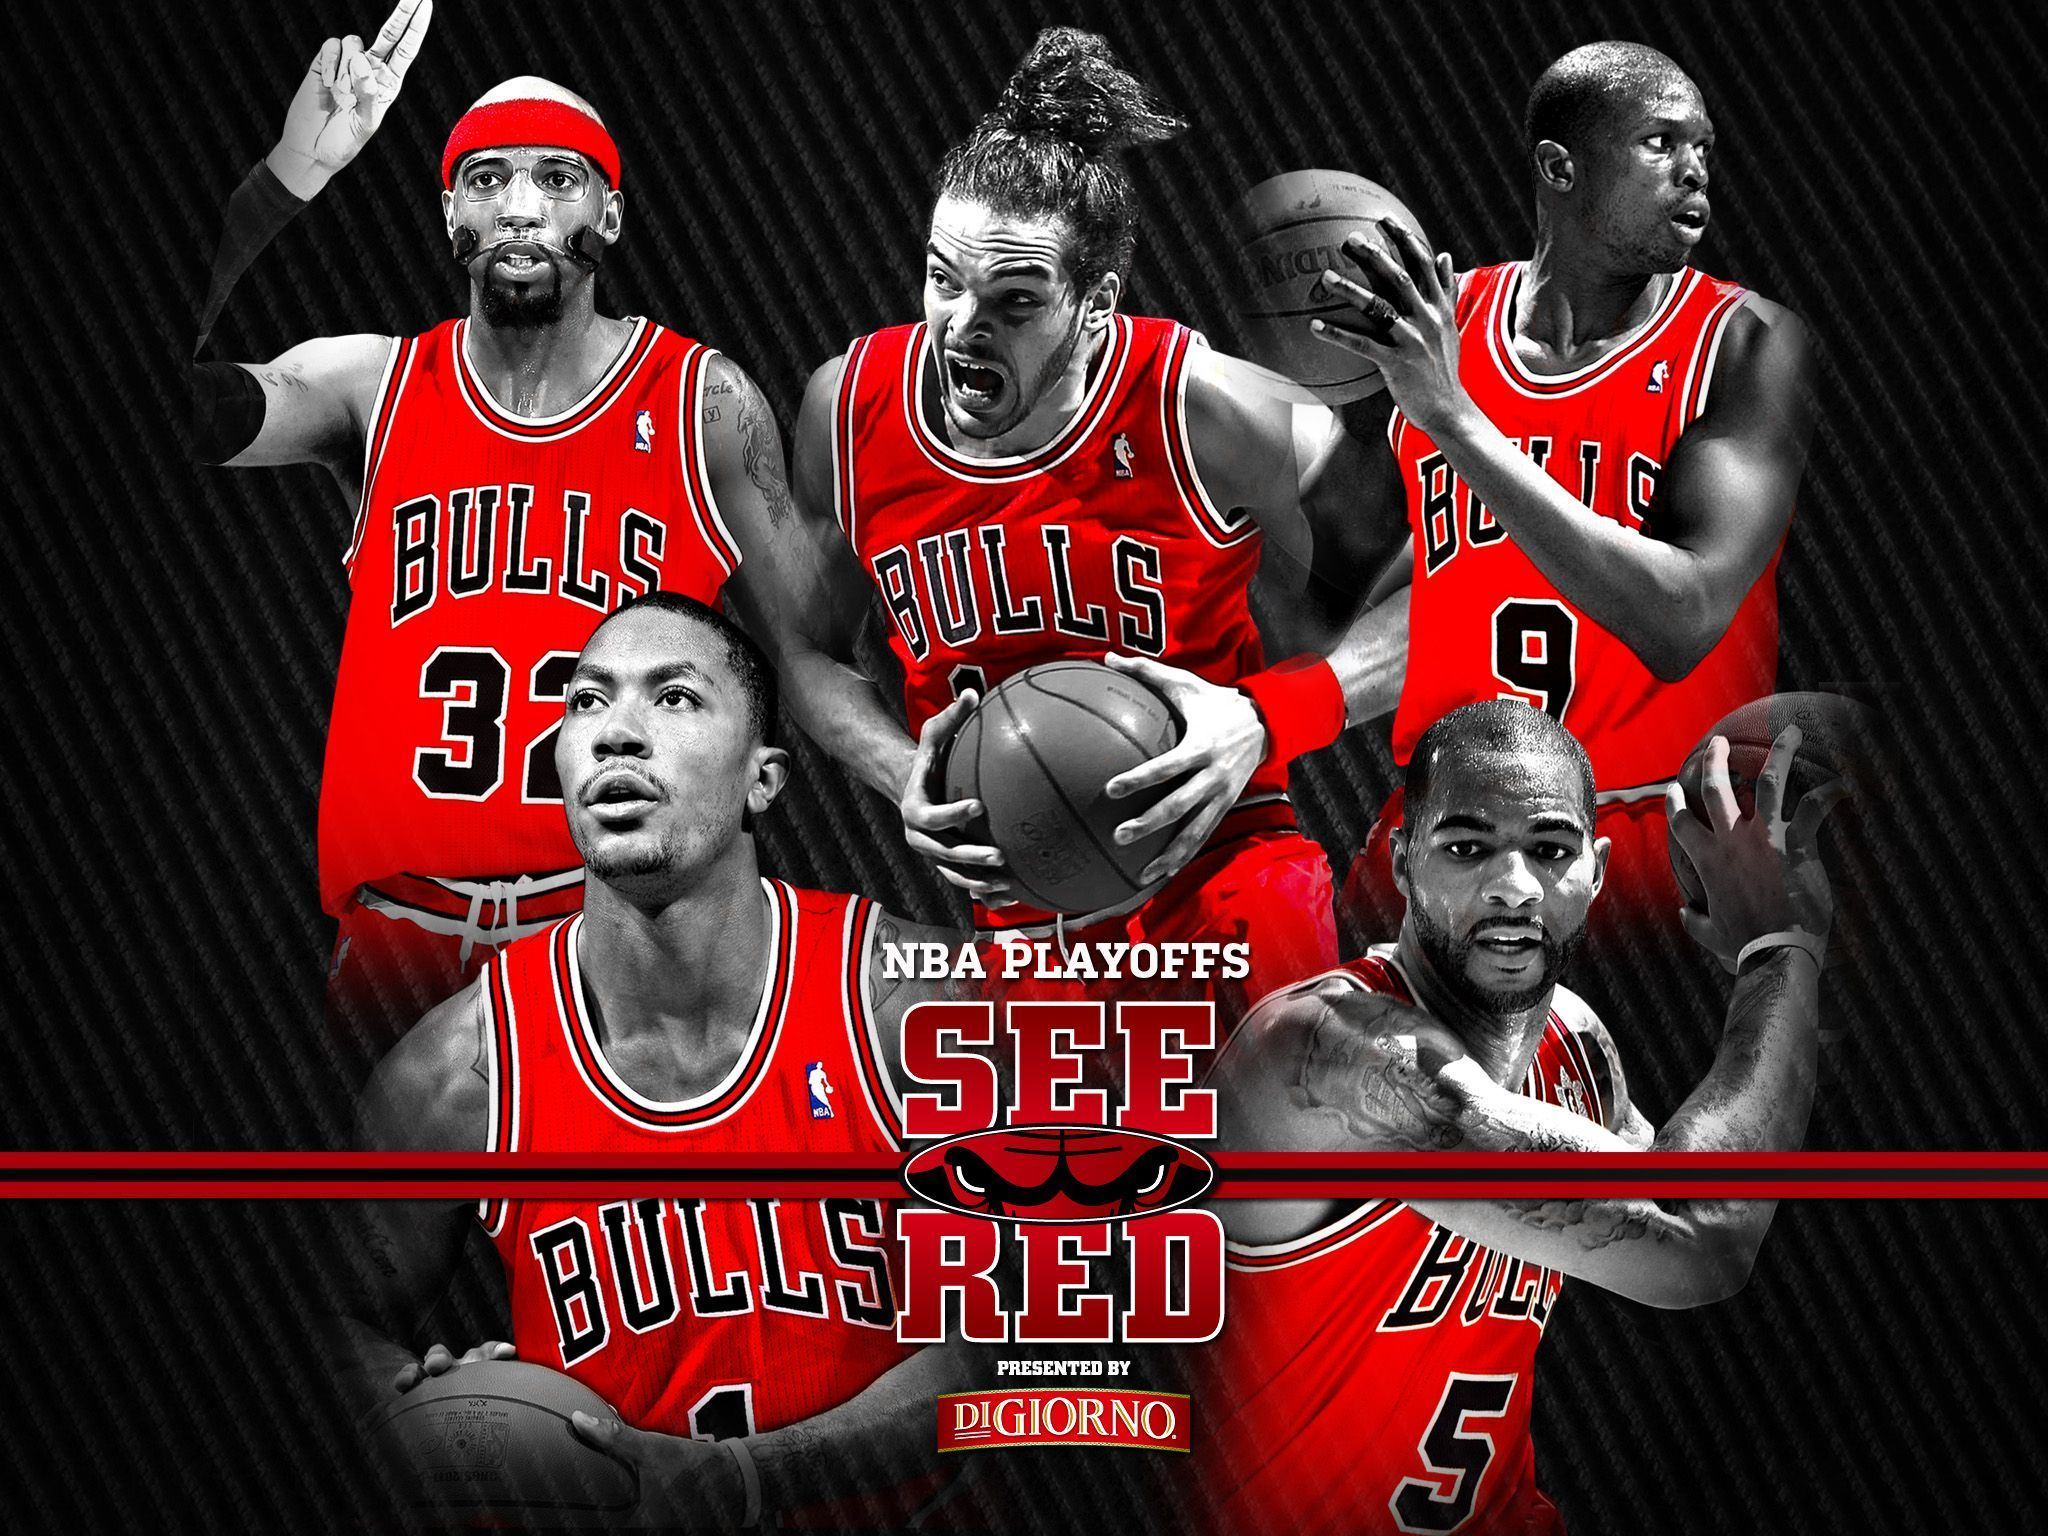 Chicago bulls wallpapers hd wallpaper 1440810 chicago bulls chicago bulls wallpapers hd wallpaper 1440810 chicago bulls wallpaper 43 wallpapers adorable wallpapers voltagebd Images